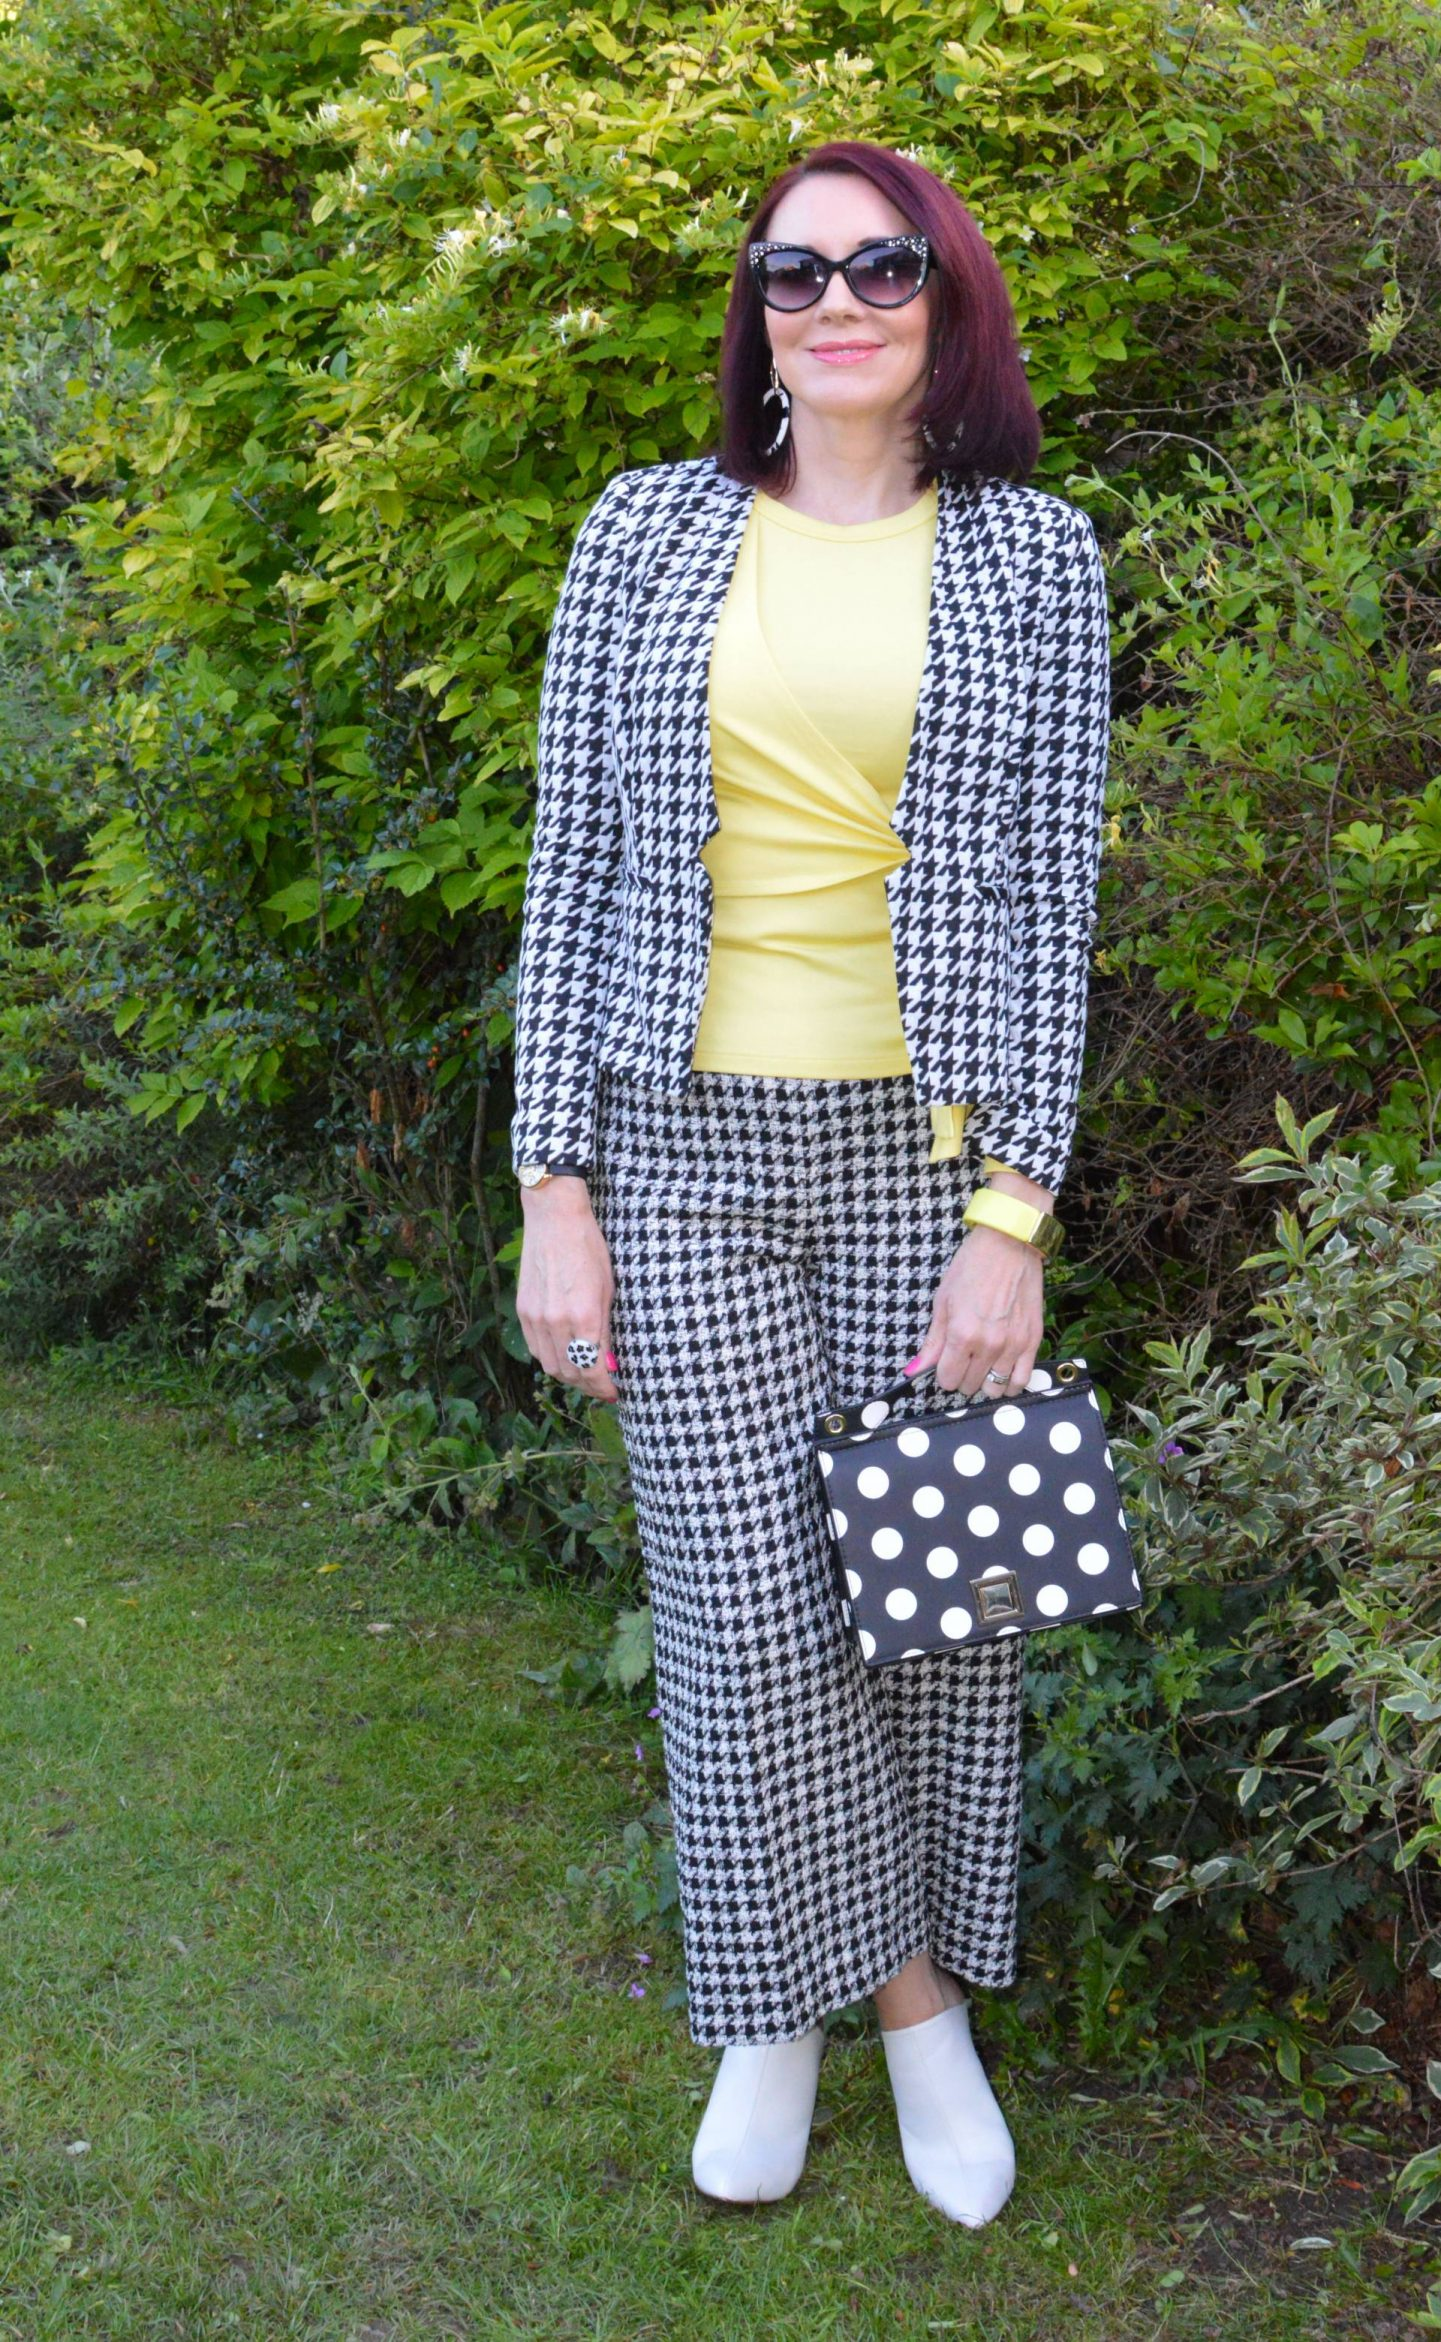 Check Me Out! - June's Style Not Age, Marks & Spencer houndstooth jacket, Zara houndstooth trousers, Mango polka dot bag, Karen Millen yellow tie front top